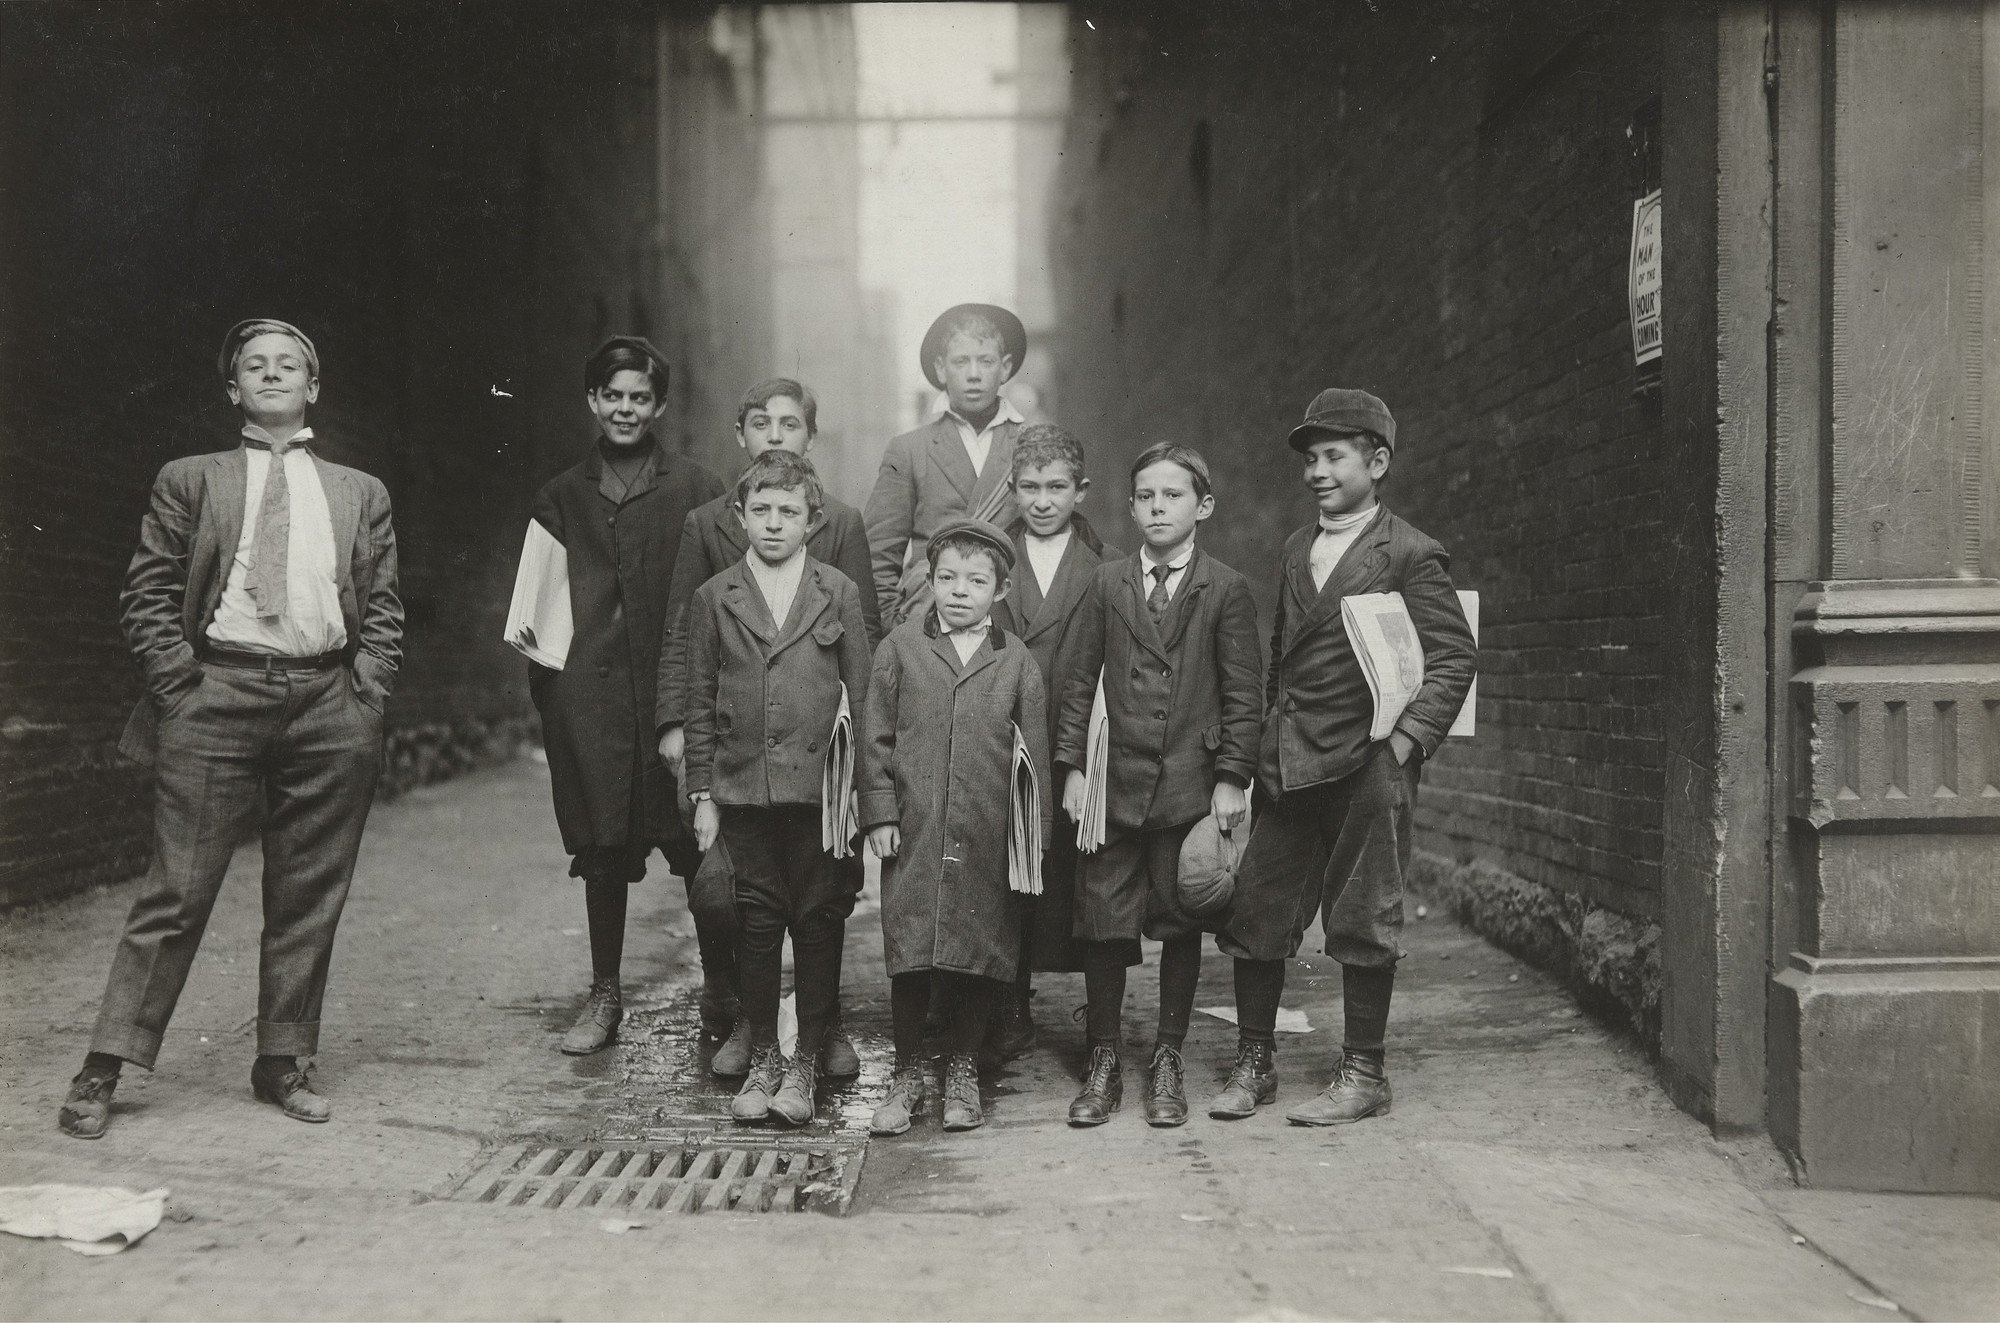 Lewis W. Hine. Group of Nashville Newsies, Tennessee. 1910